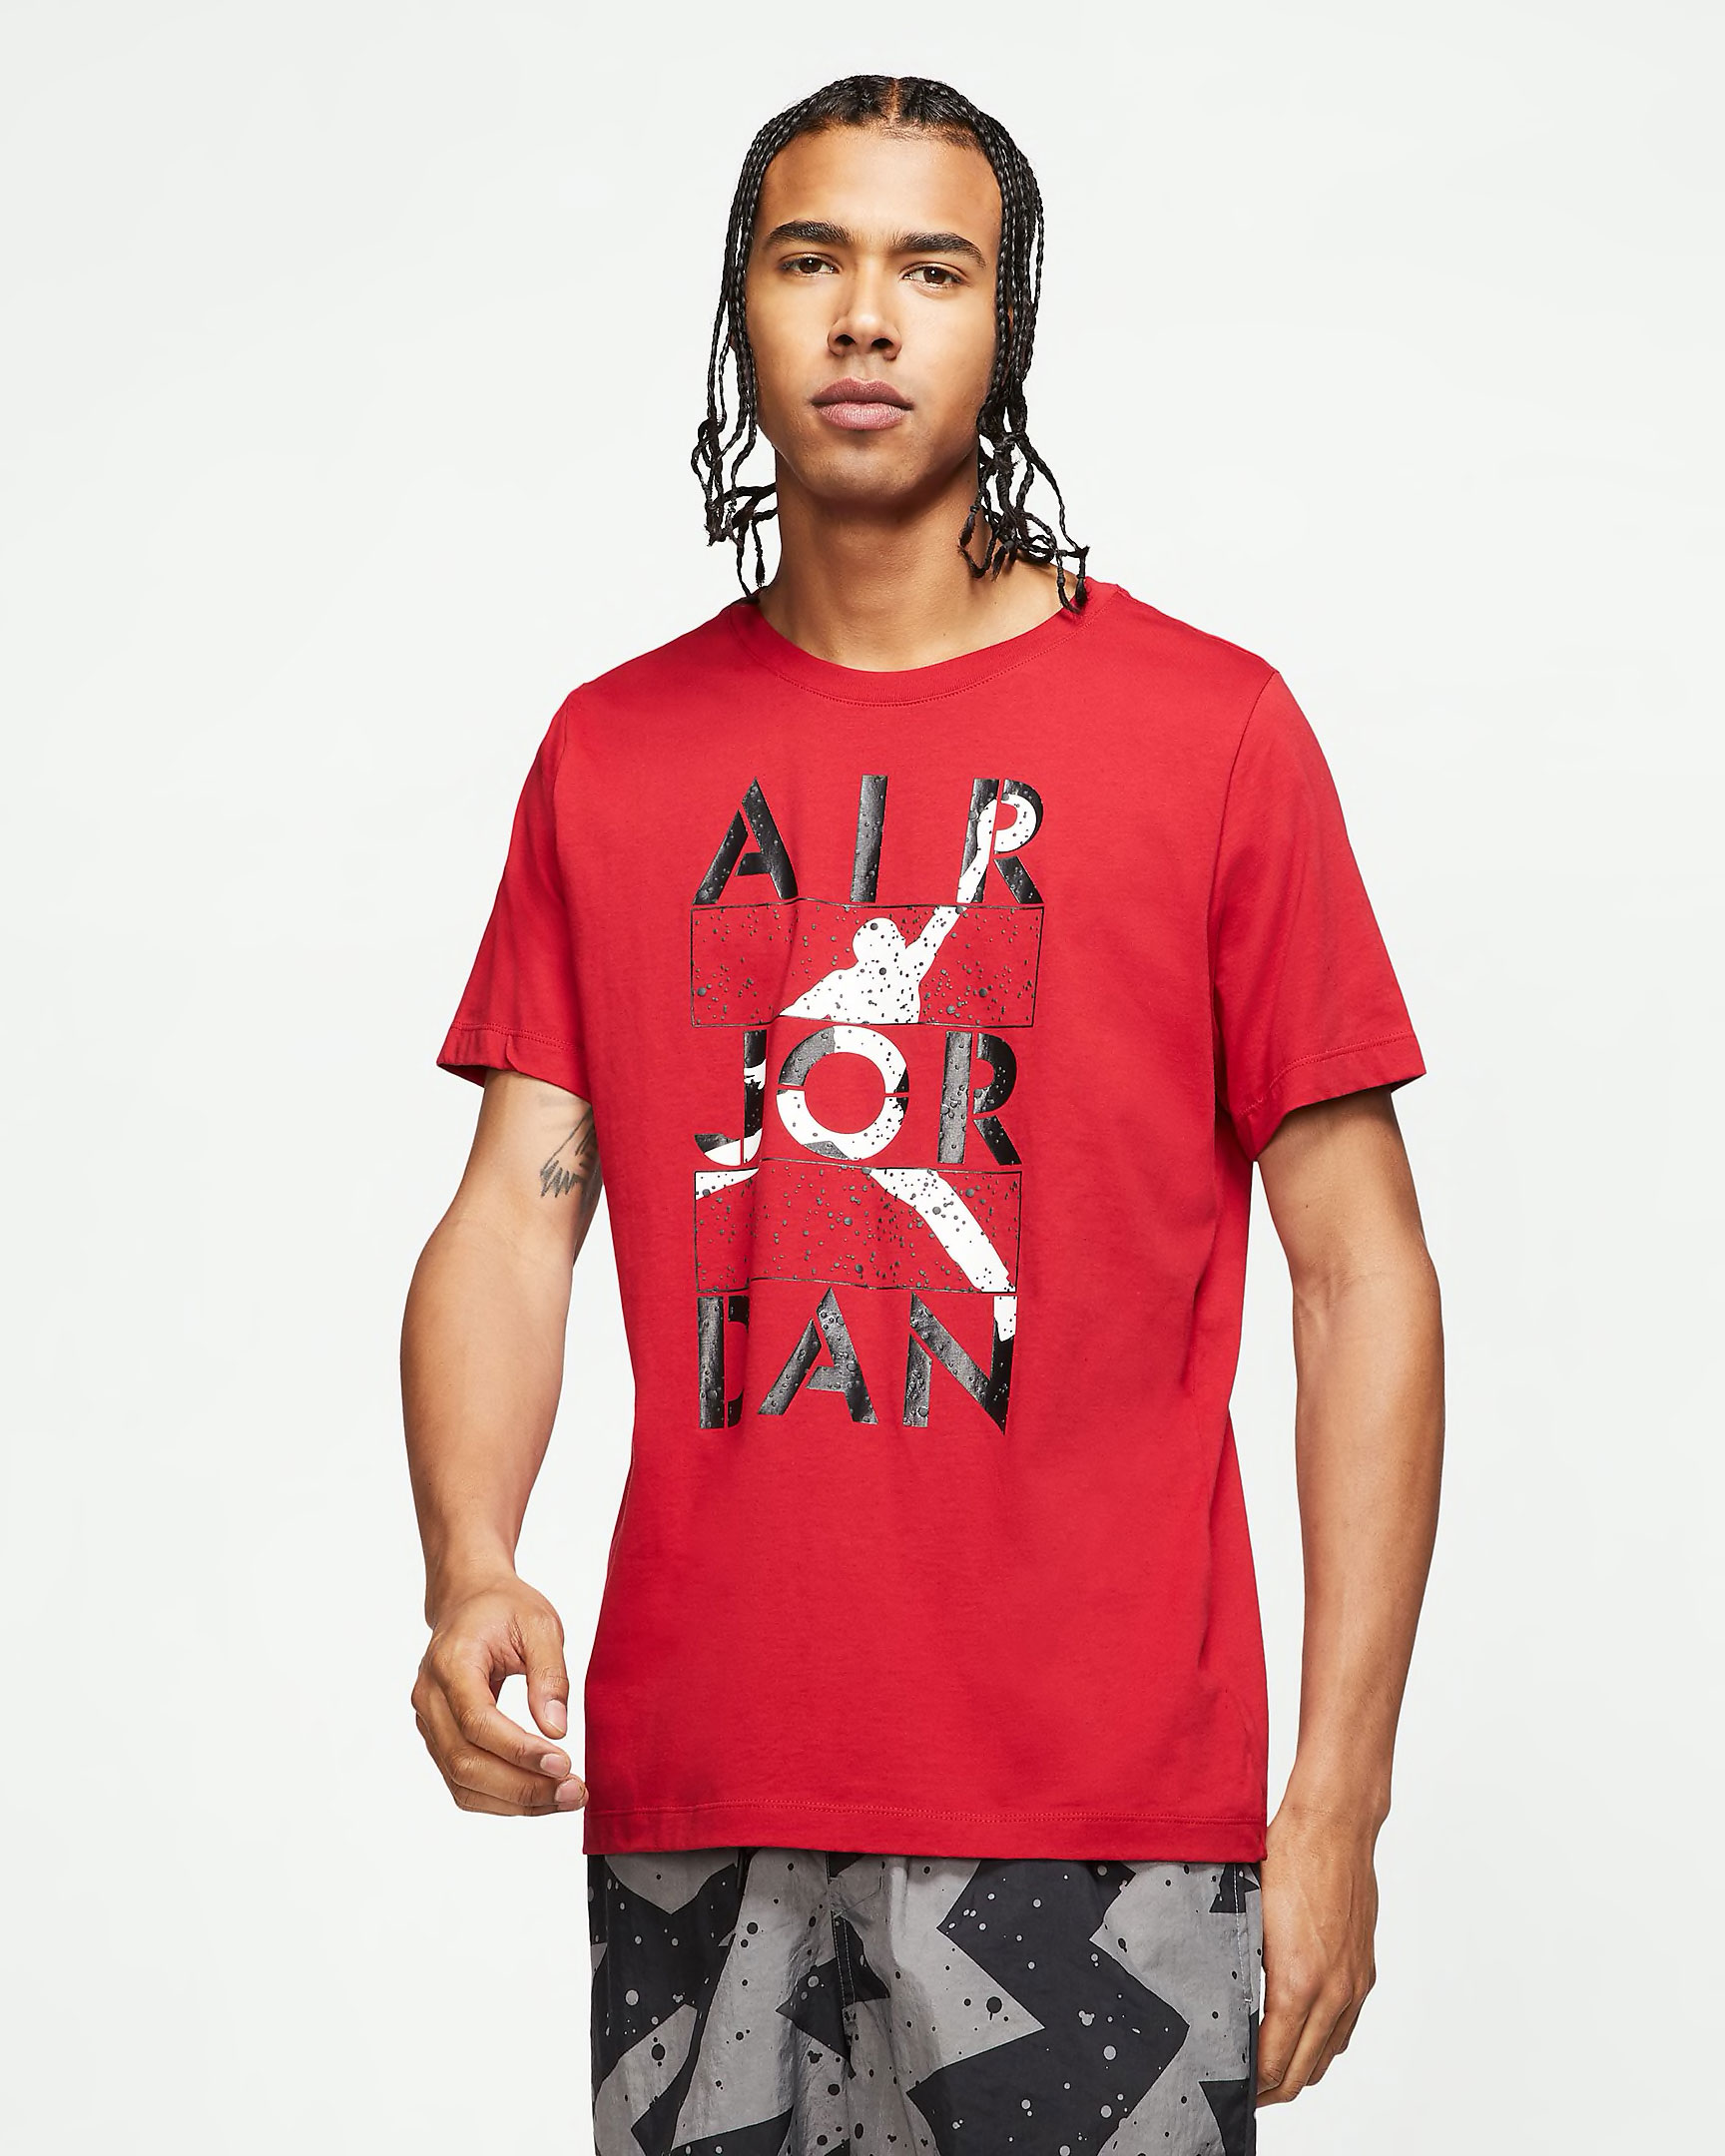 jordan-5-fire-red-2020-poolside-shirt-1